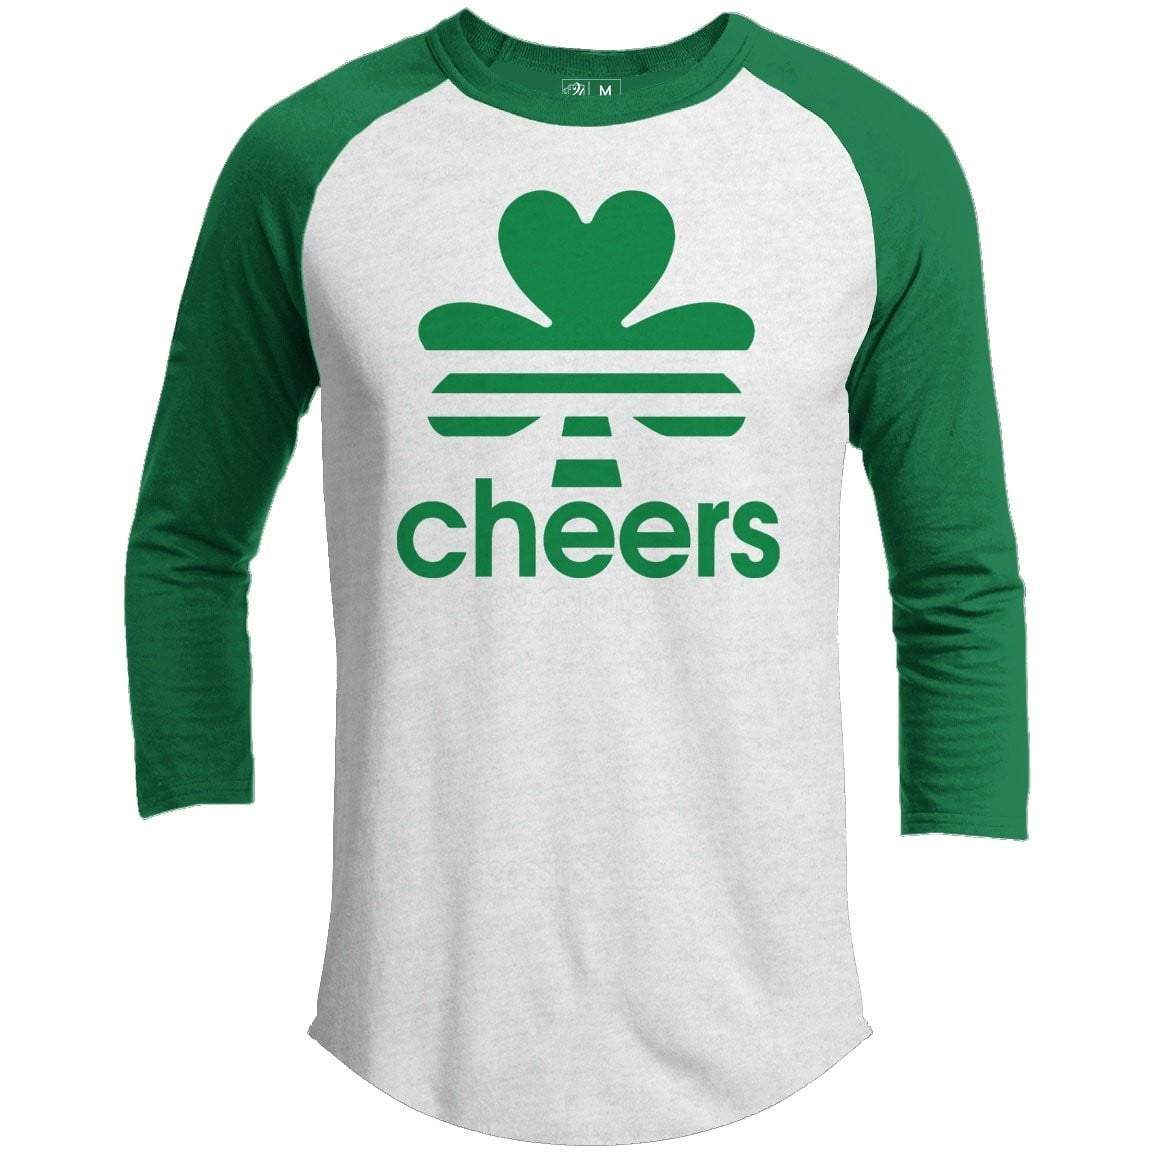 Cheers St. Patrick's Day Raglan